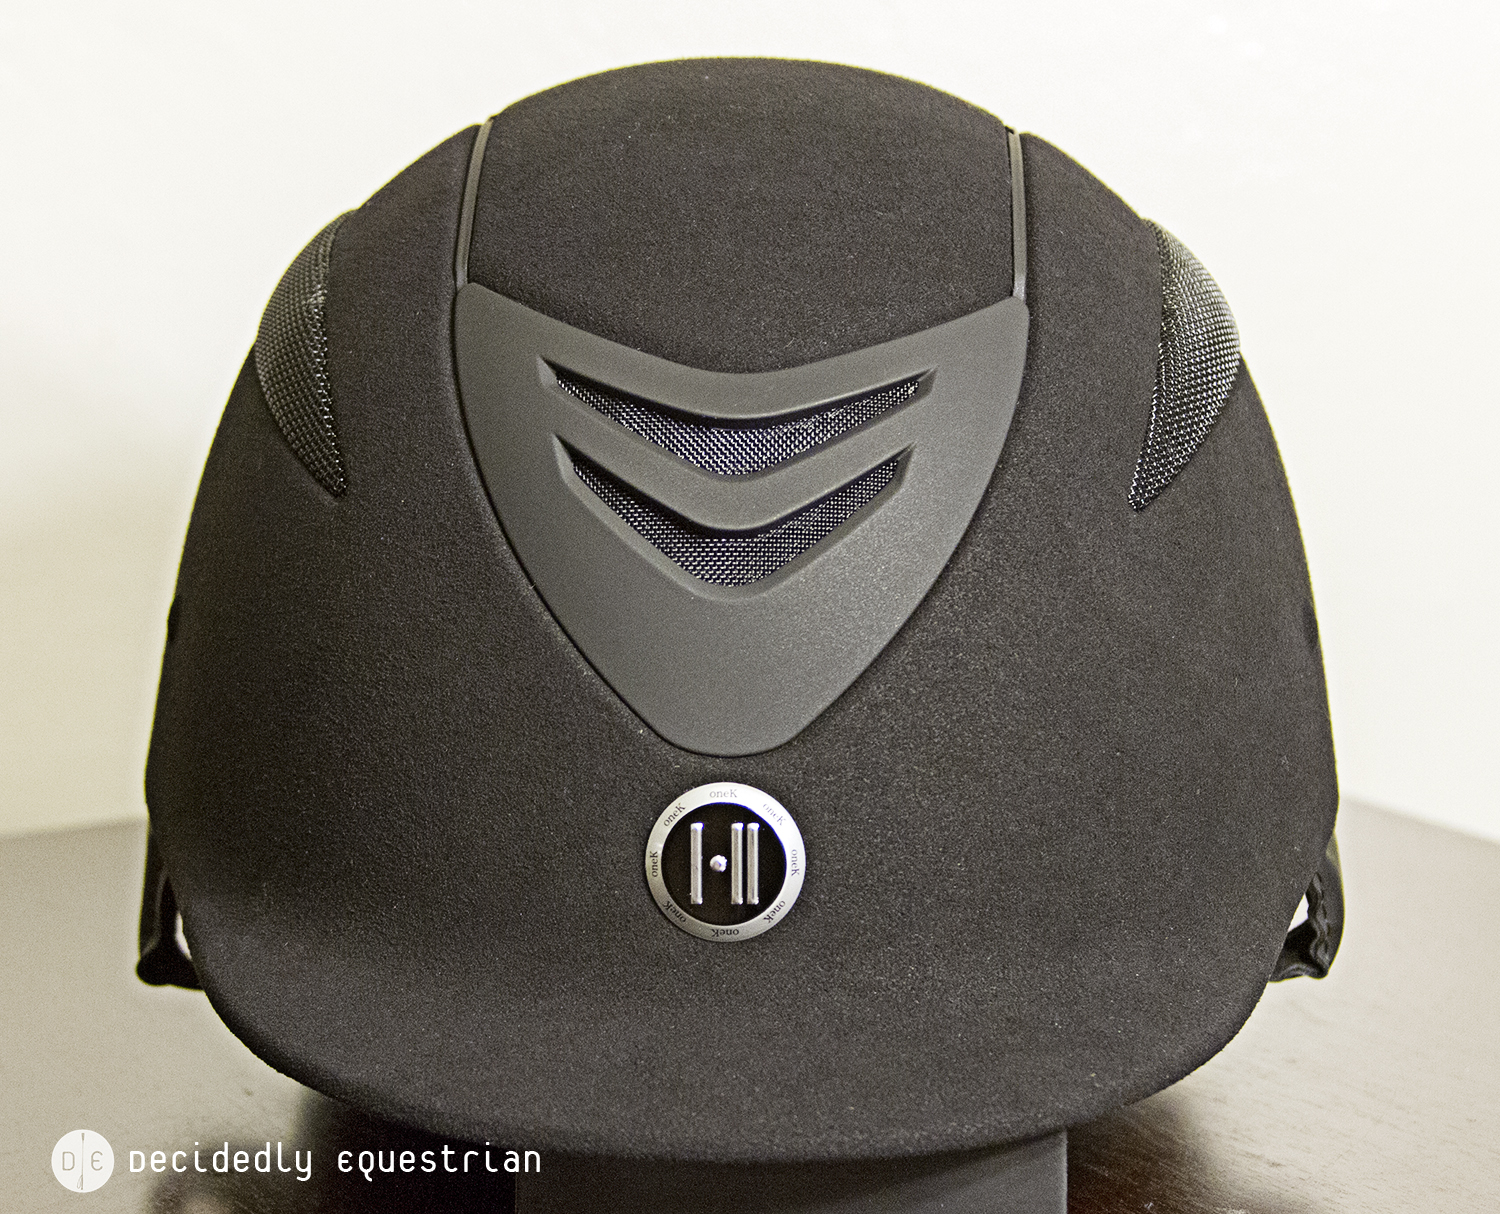 One K Defender Air Suede Riding Helmet Review